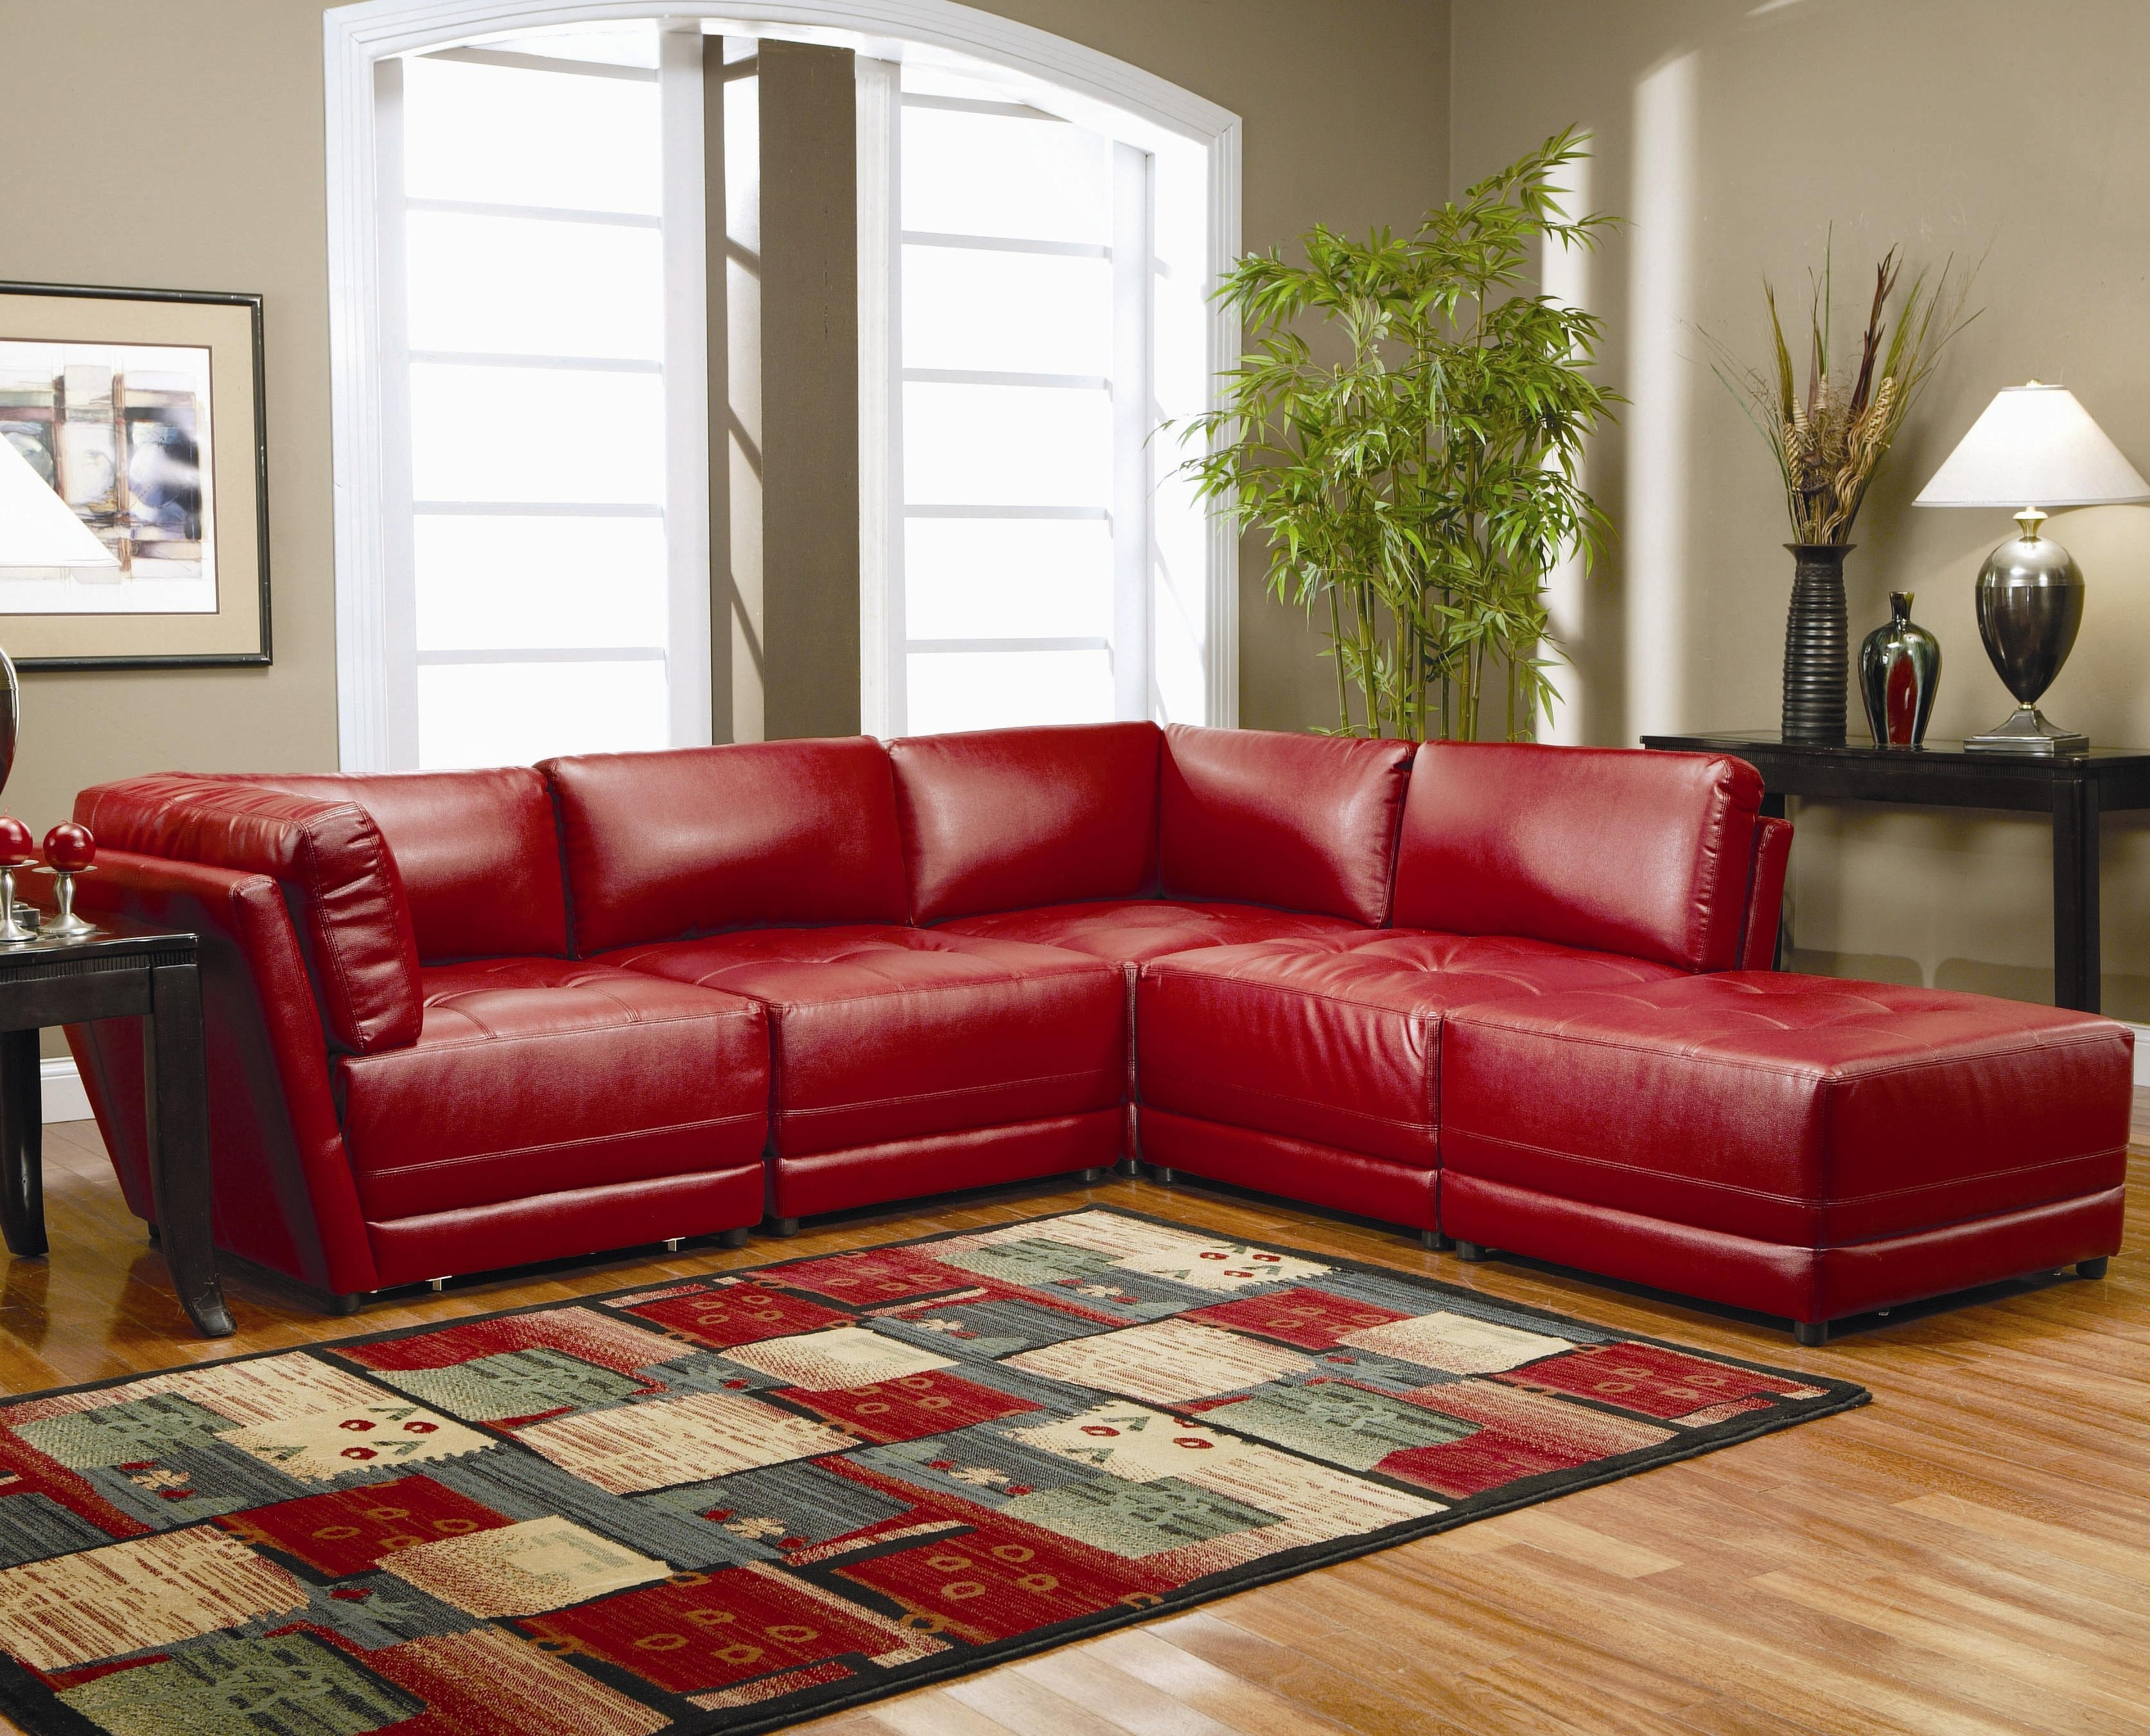 Warm Red Leather Sectional L Shaped Sofa Design Ideas For Living With Best And Newest Green Bay Wi Sectional Sofas (Gallery 15 of 20)